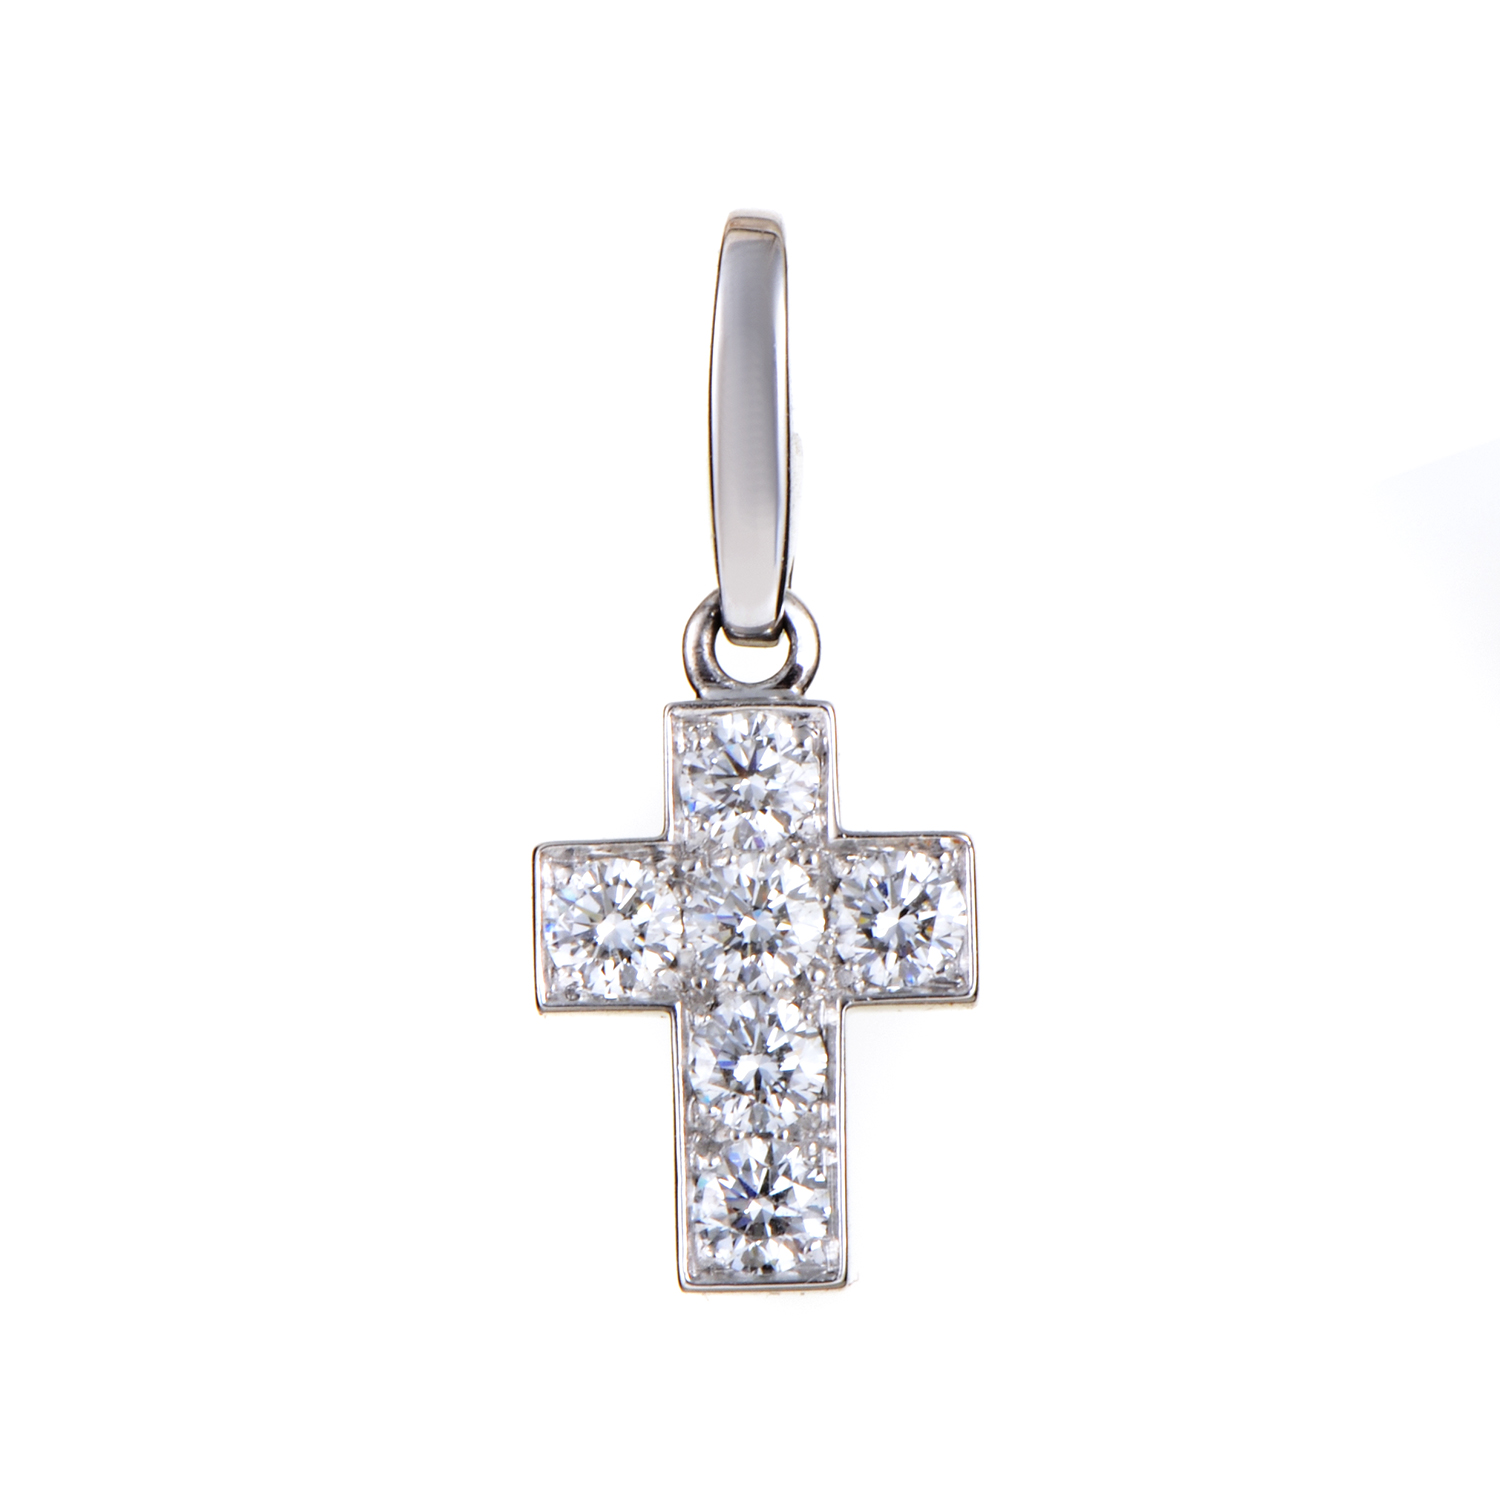 Cartier Women's 18K White Gold Diamond Cross Pendant AK1B3932